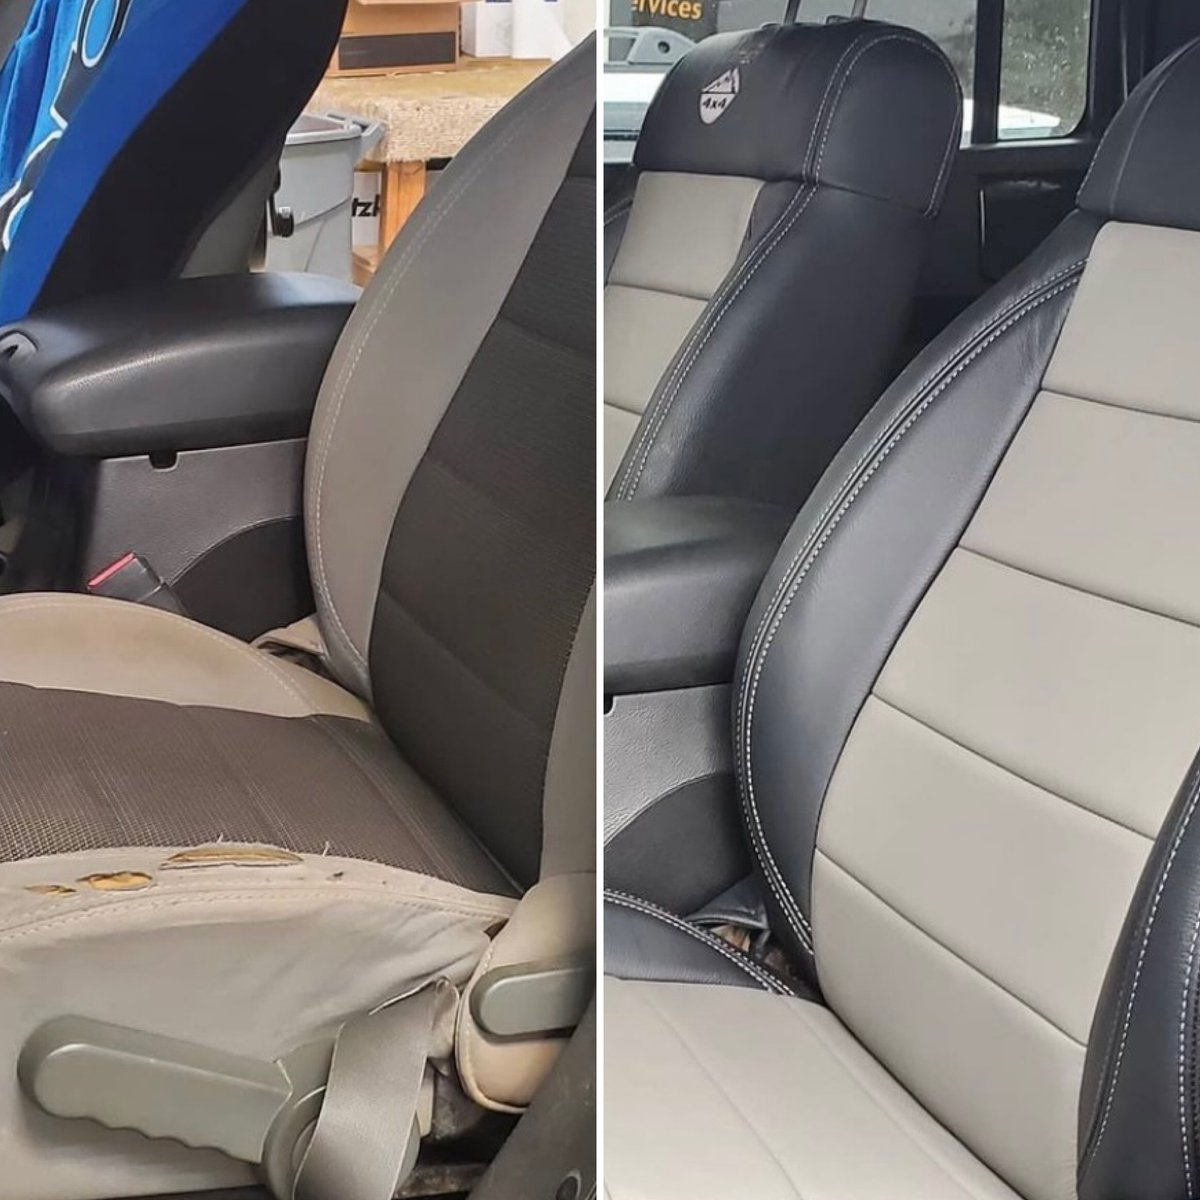 This #Jeep did it up WAY big with its Katzkin XT leather 🏋️ from @atncustoms  #jeepupgrade #hemi #hemipowered #beforeandafter #loveyourdrive #becauseclothsucks #leatherisbetter #katzkin #katzkinleather #customleather #custominterior https://t.co/dgQU5KqsPw